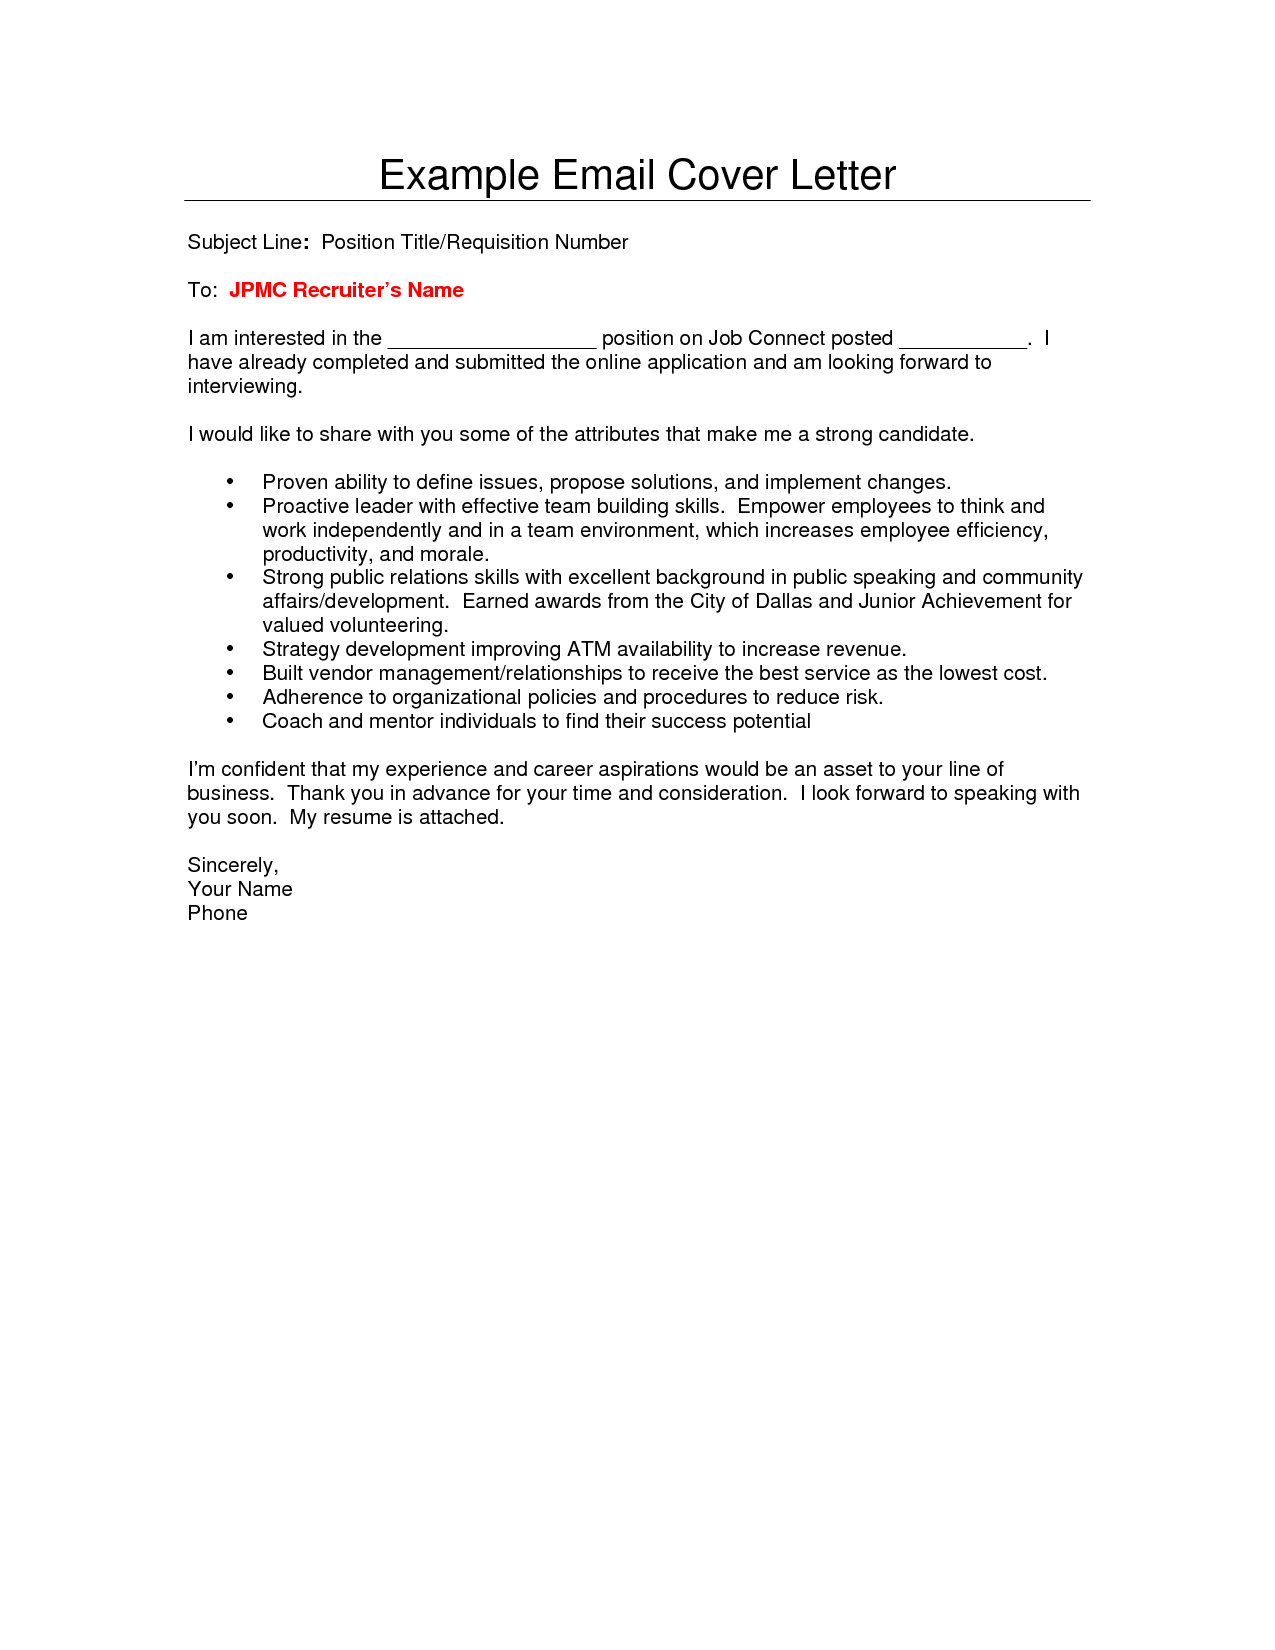 Email Job Cover Letter Template